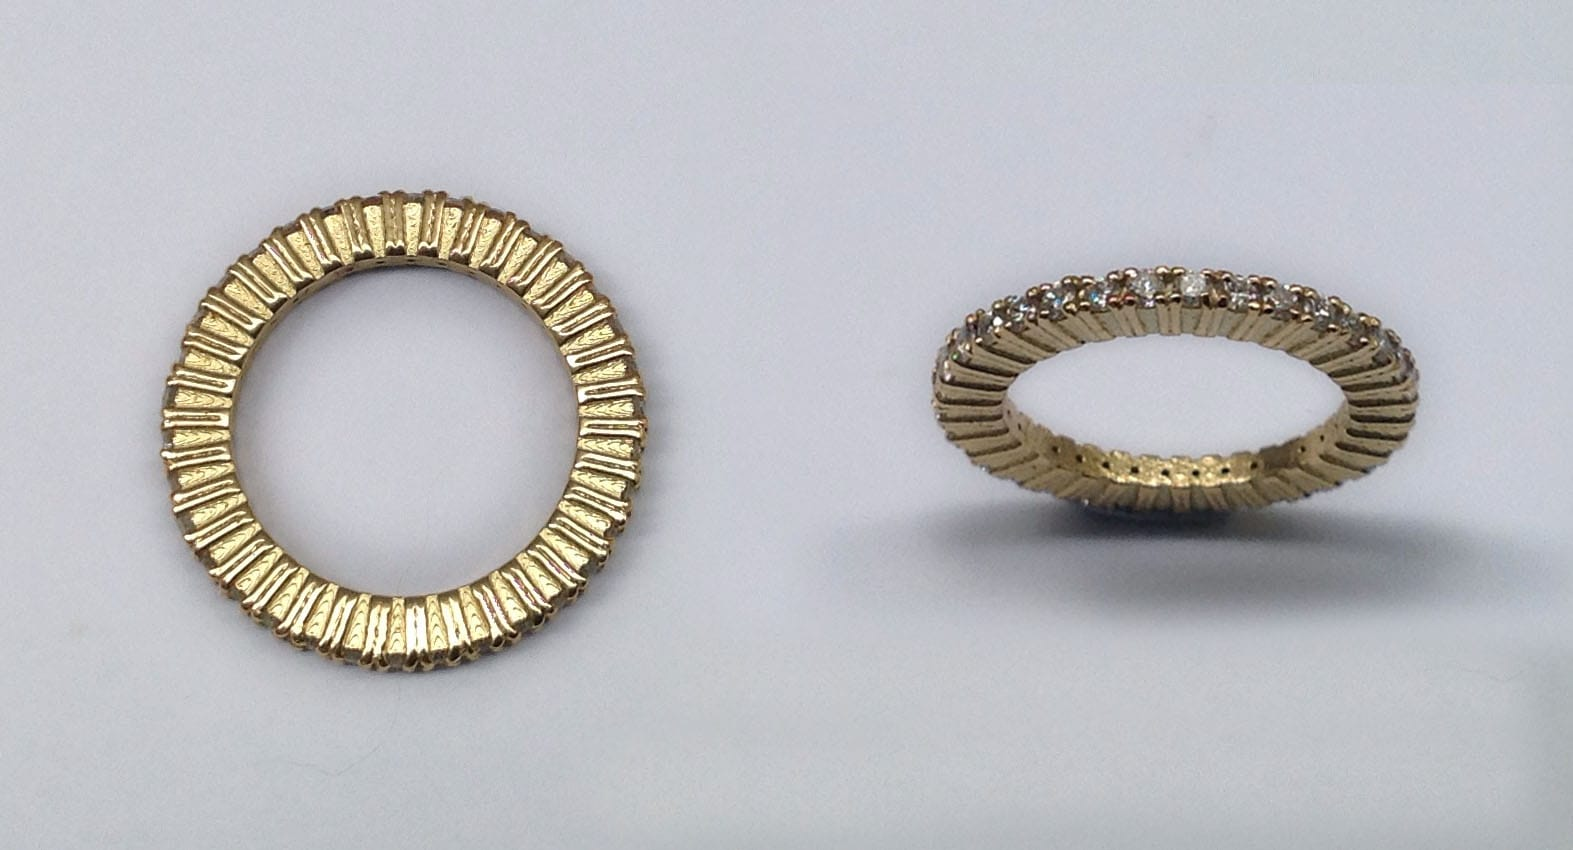 Eternity ring, 18 carat yellow gold with 38 brilliant cut diamonds